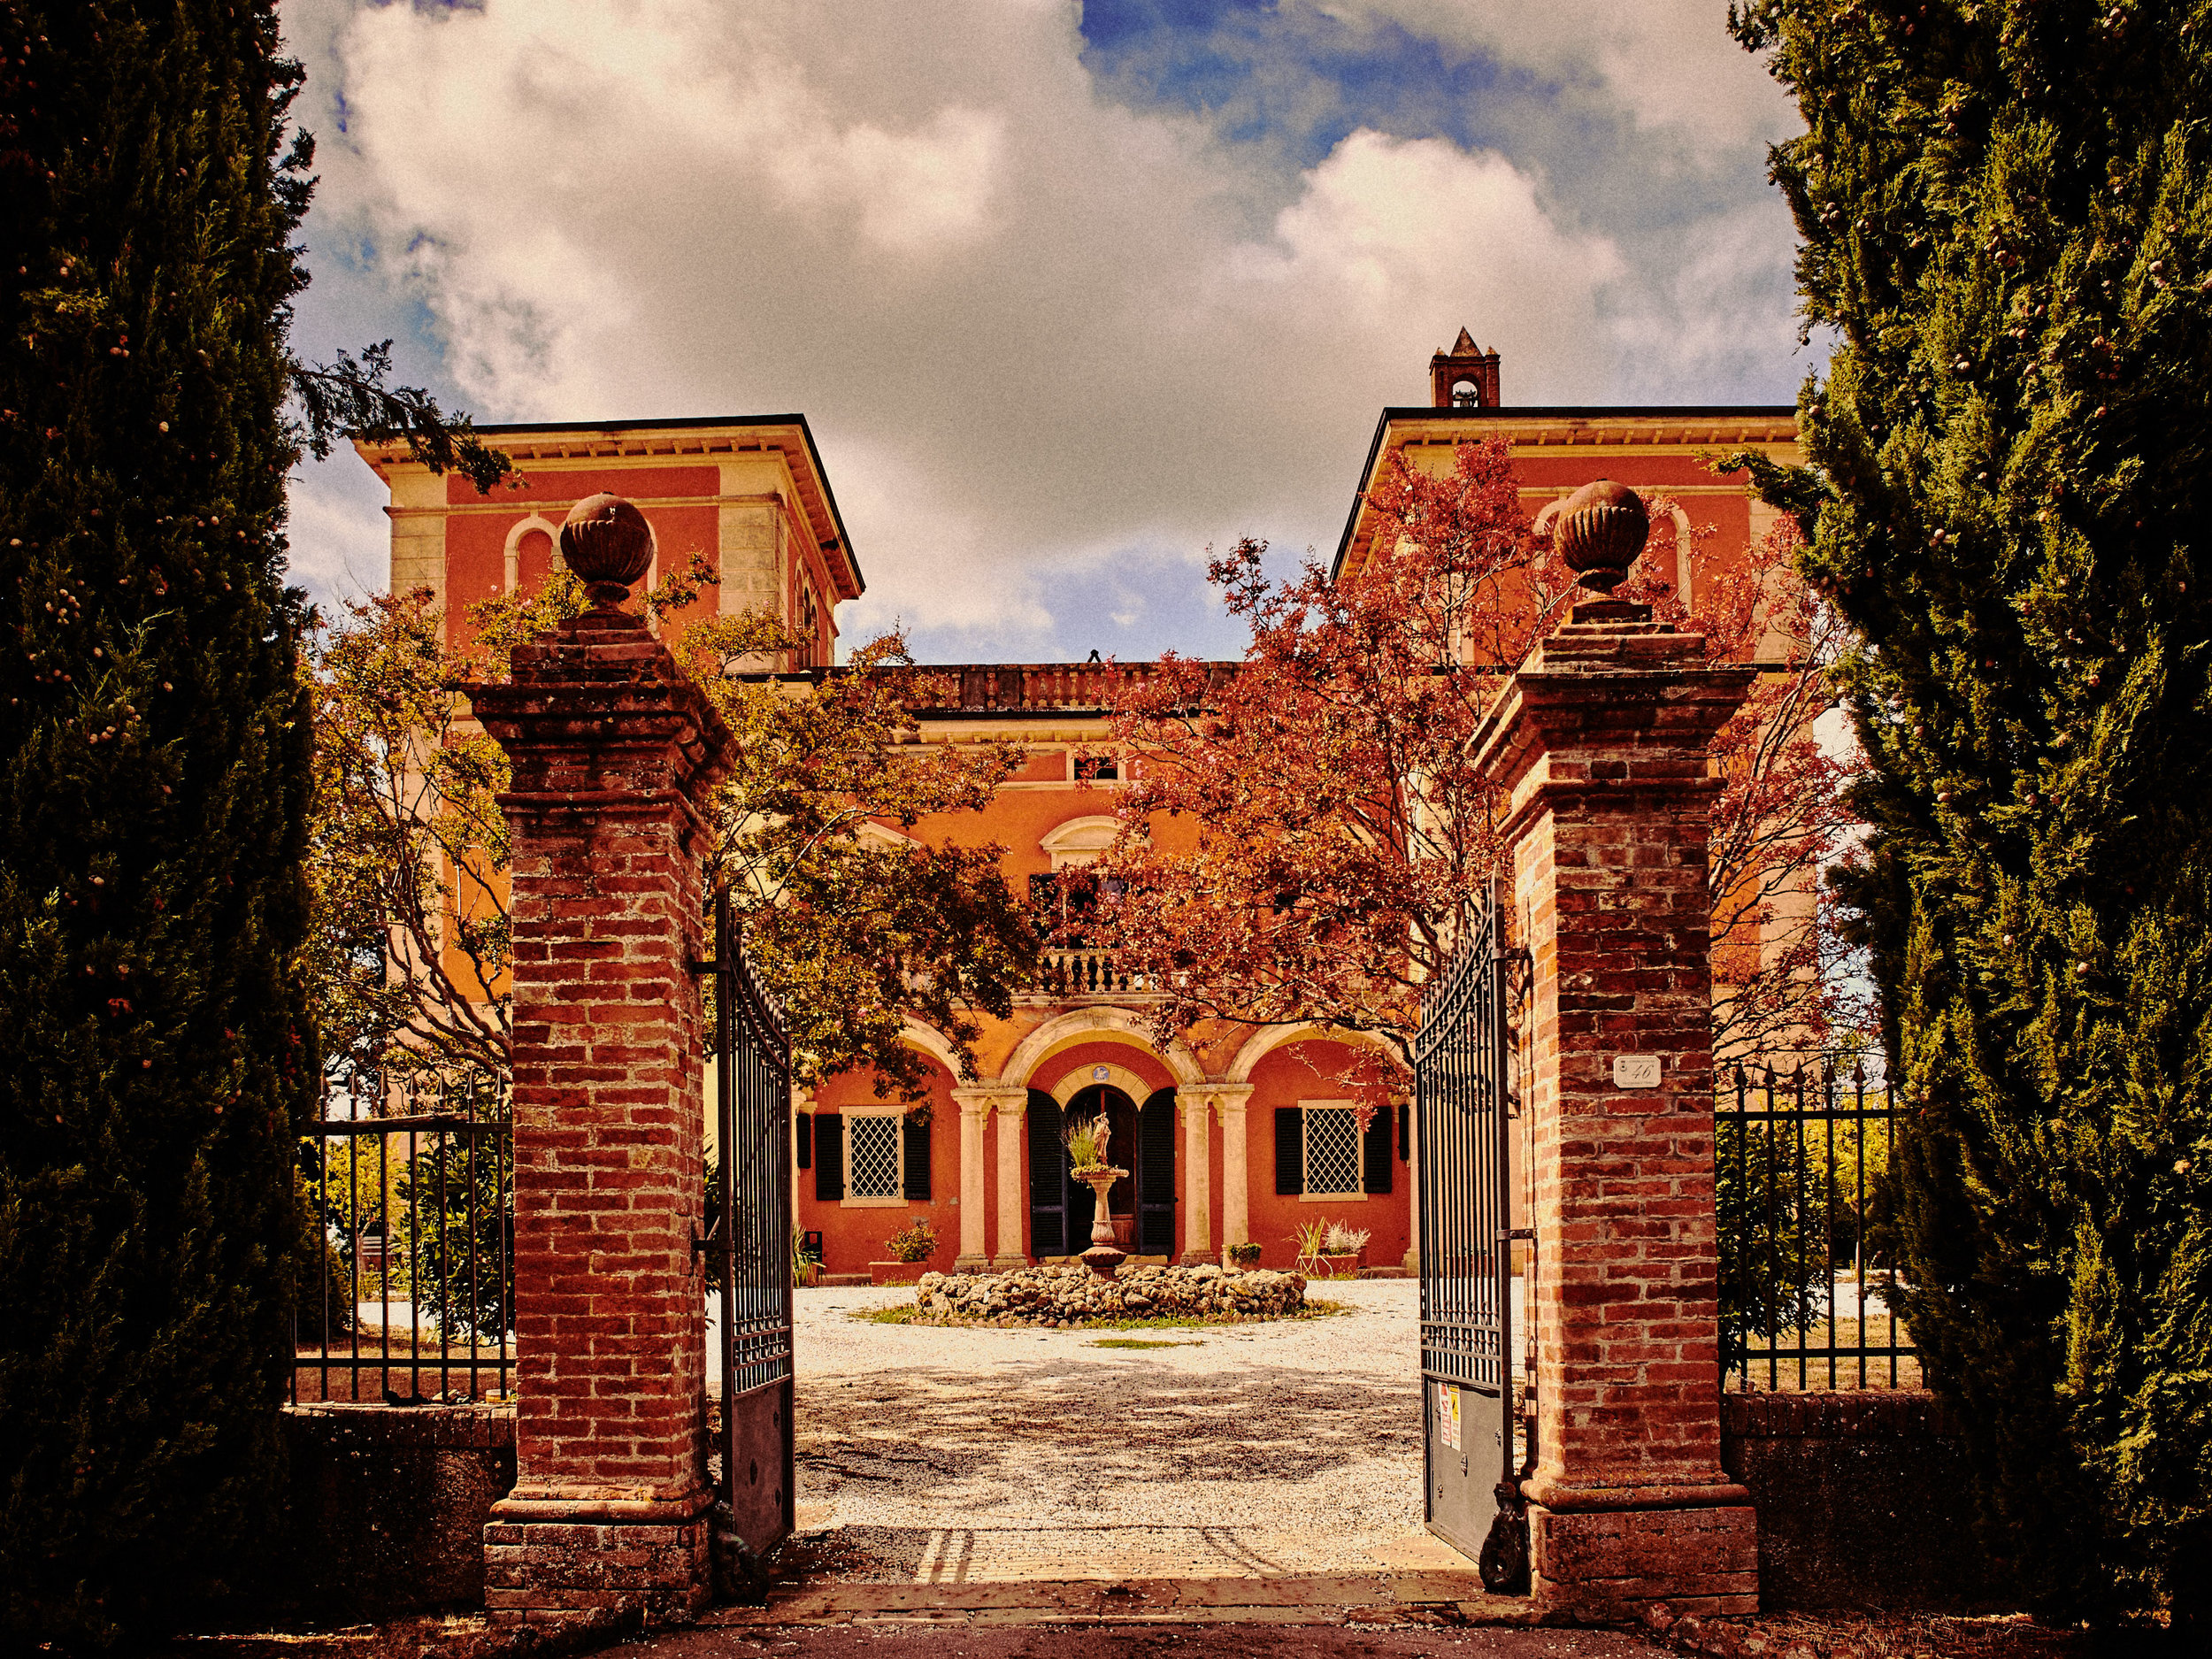 Villa_Lena_057_2019_edit.jpg